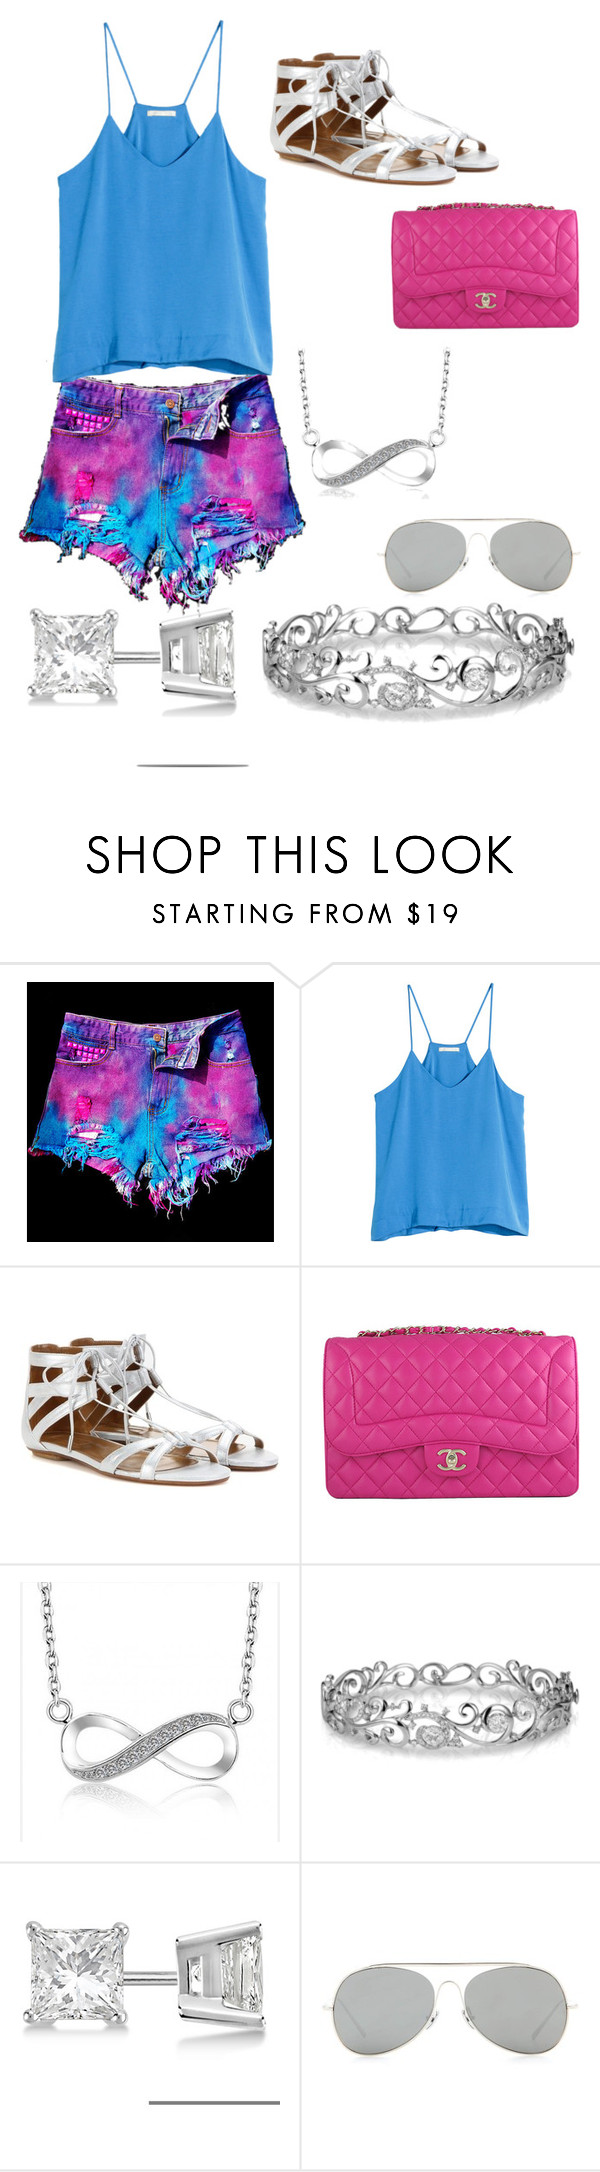 """Summer"" by msowers33 ❤ liked on Polyvore featuring WithChic, H&M, Aquazzura, Chanel, Effy Jewelry, Allurez, Acne Studios, women's clothing, women and female"